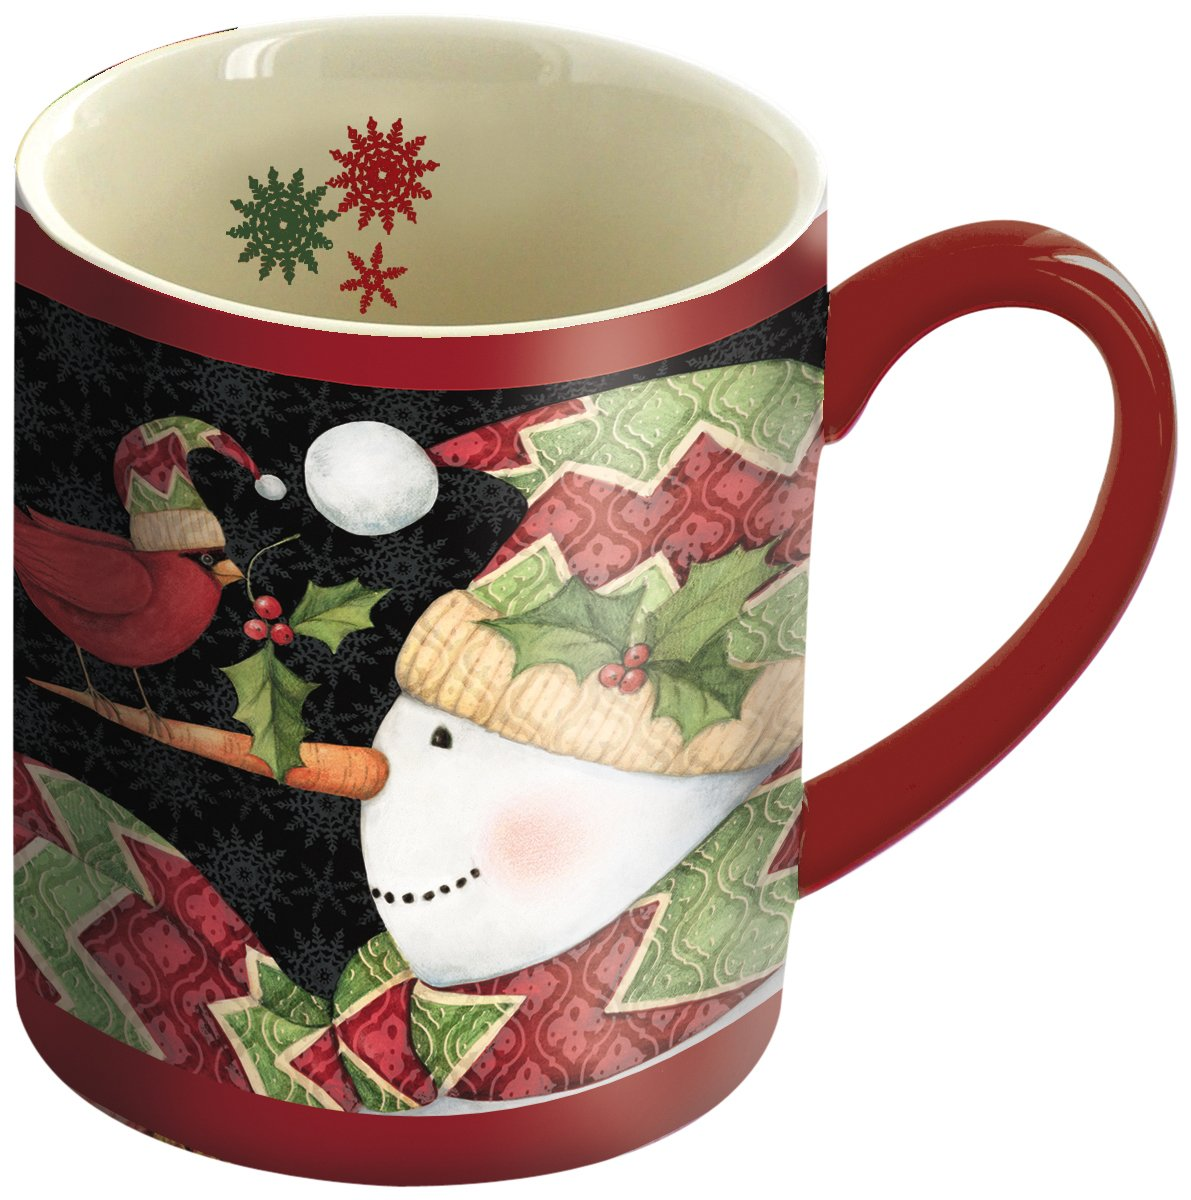 LANG - 14 oz. Ceramic Coffee Mug - Cardinal On Nose Snowman Art by Susan Winget - Christmas Holiday